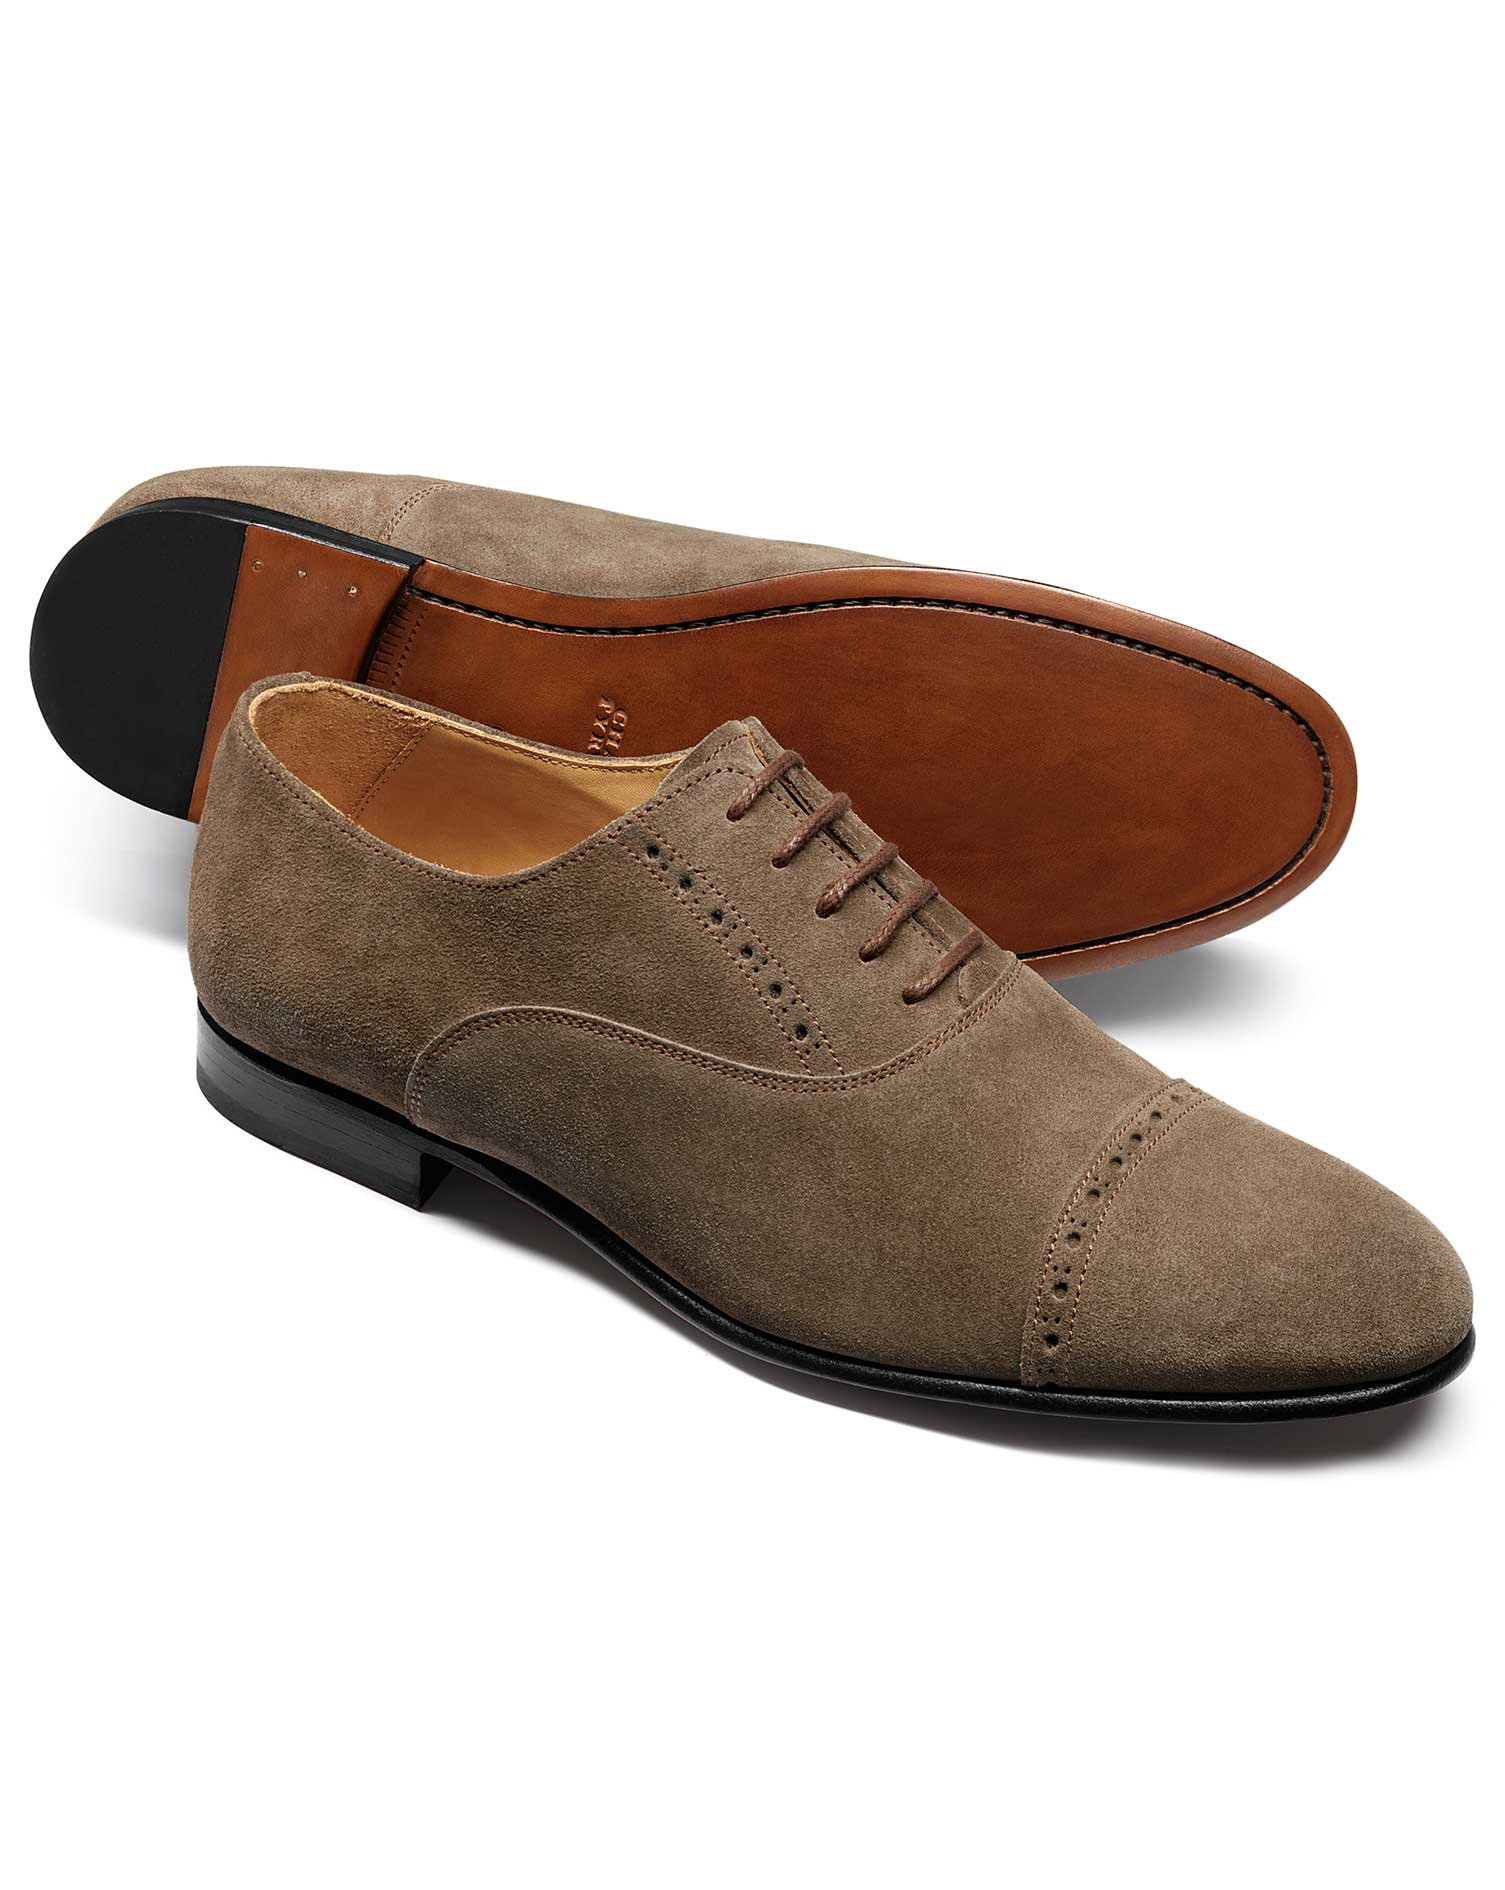 Taupe Suede Oxford Brogue Shoe Size 11 R by Charles Tyrwhitt